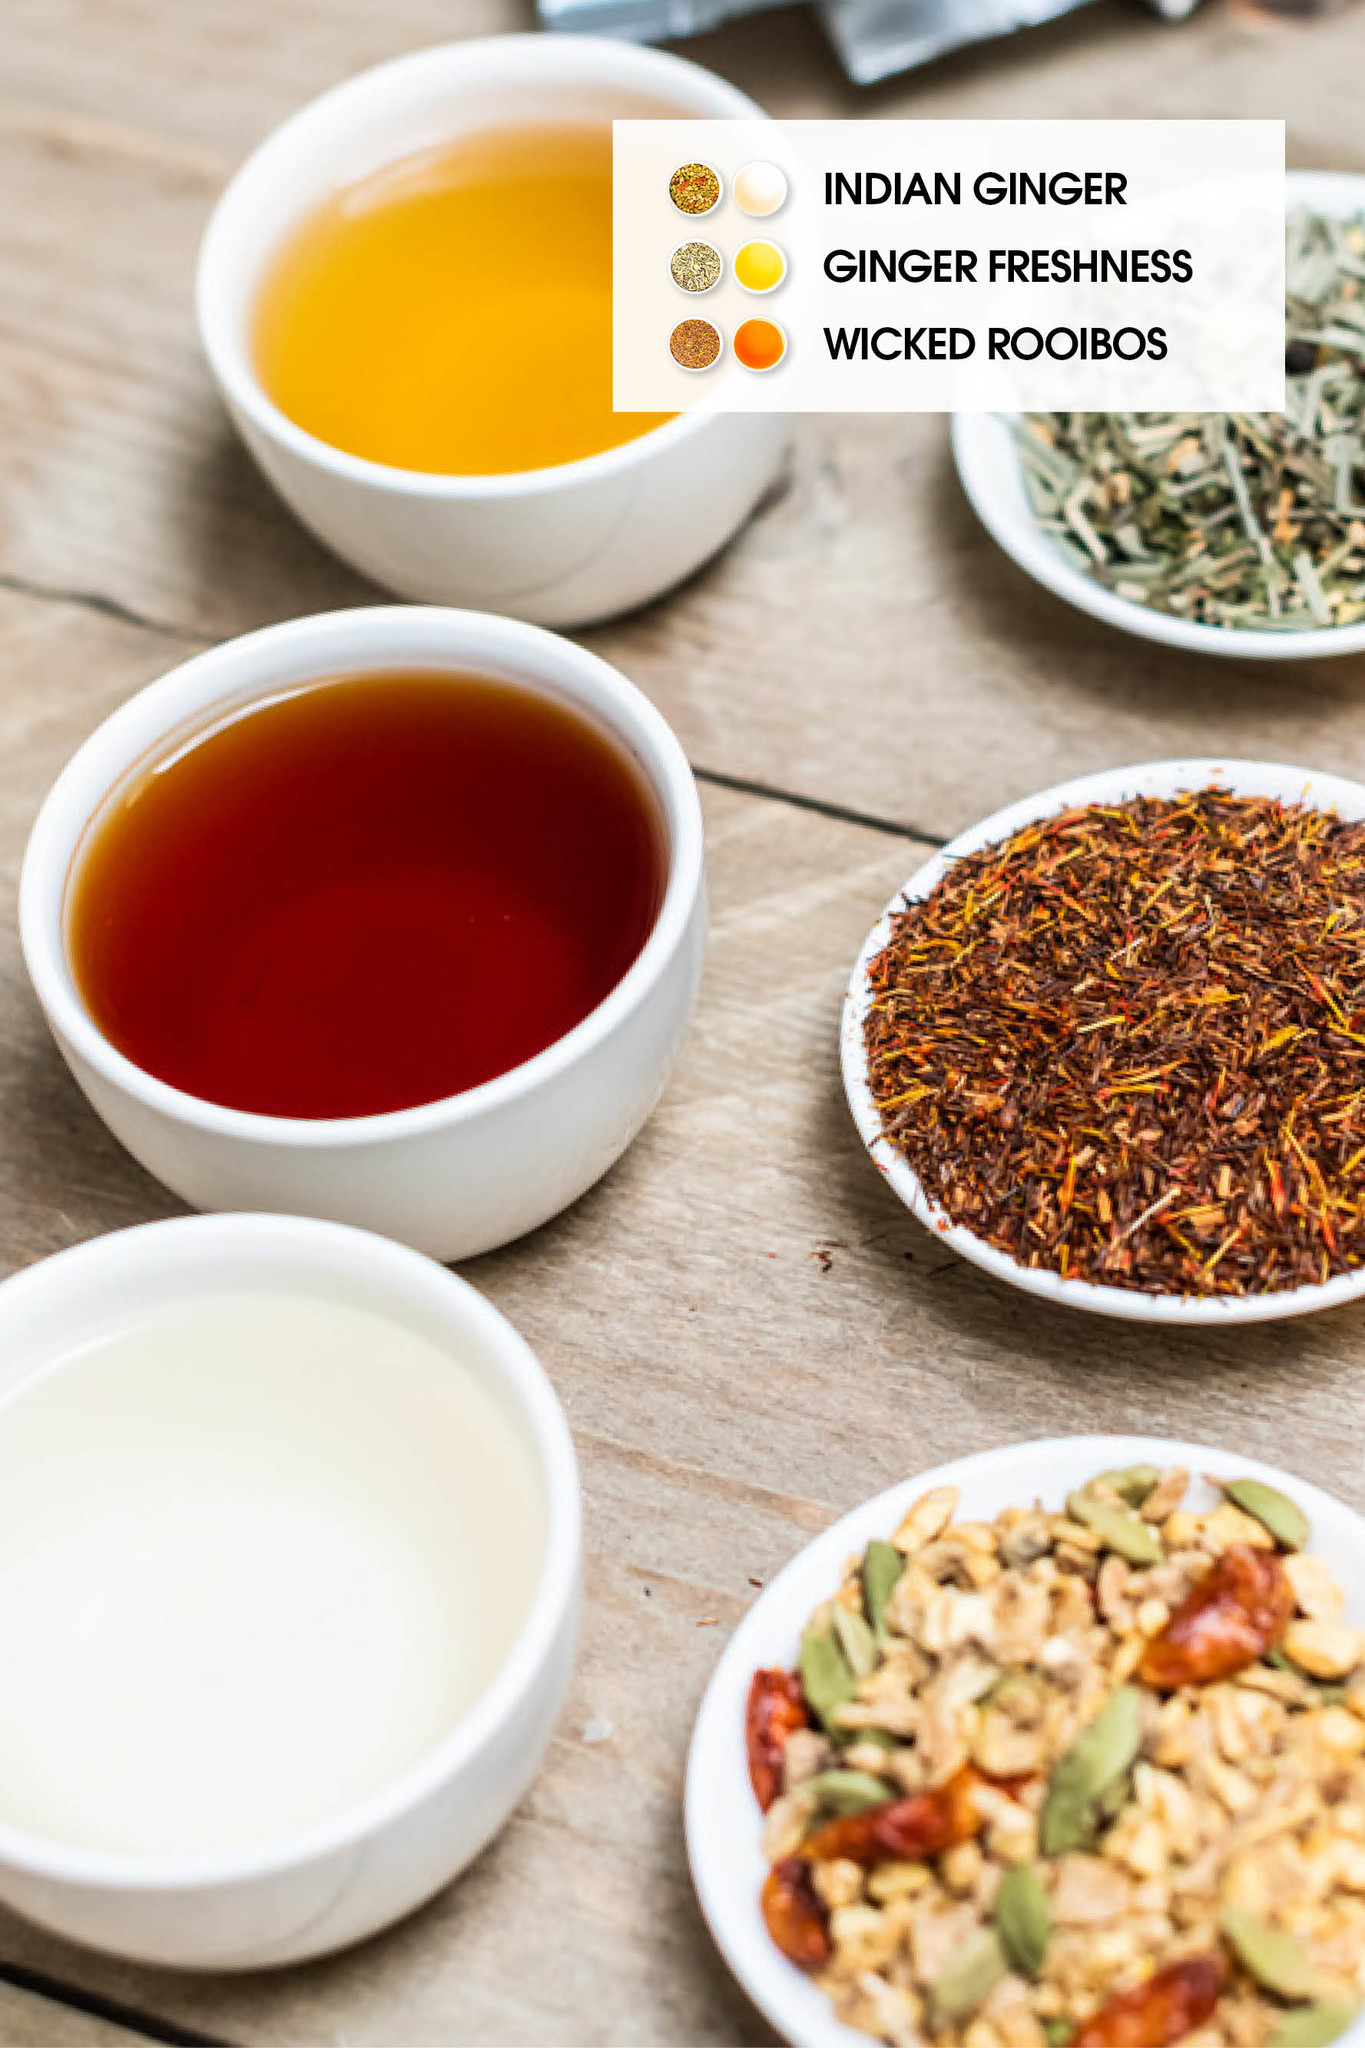 3 HERBAL INFUSIONS TRY OUT SET